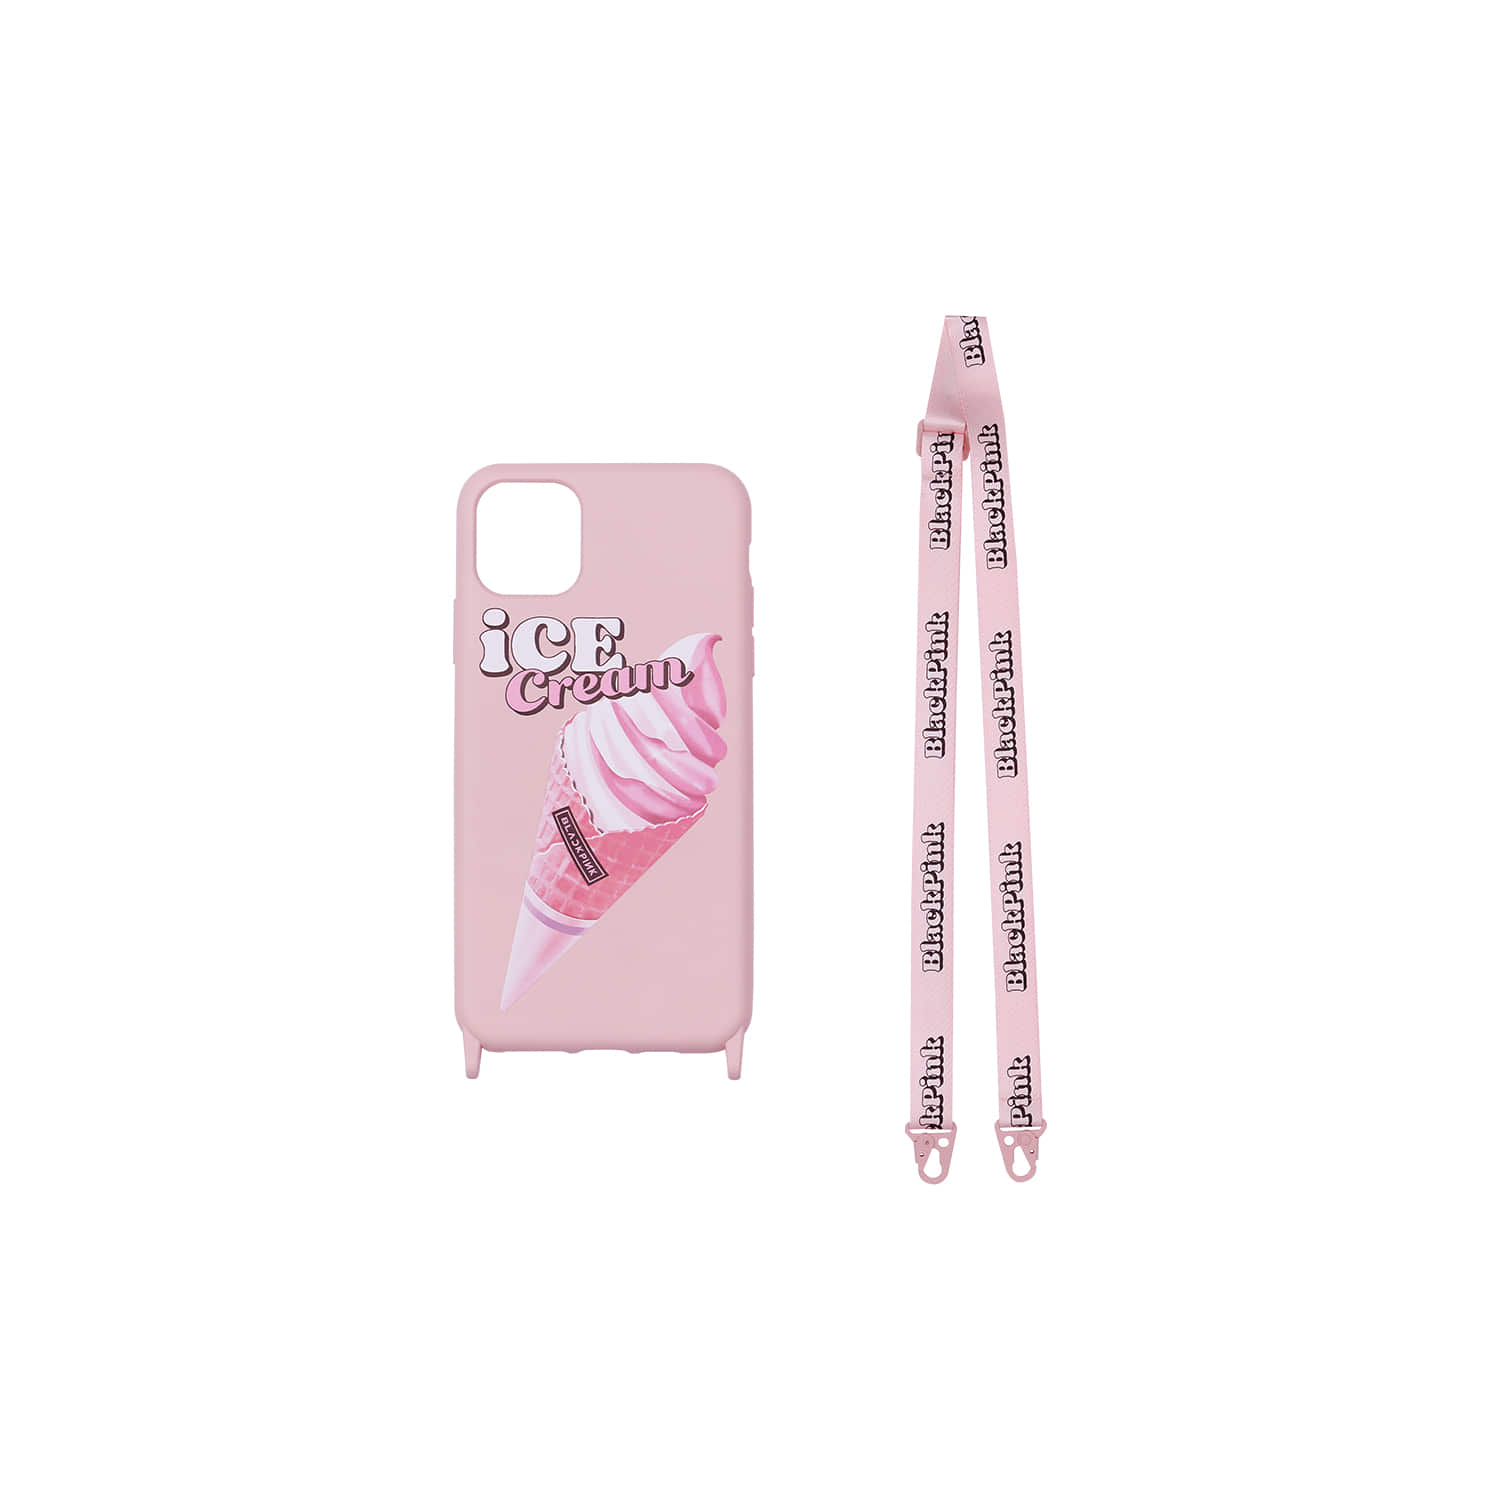 [ICECREAM] BLACKPINK LANYARD PHONECASE_ICECREAM CONE_PINK